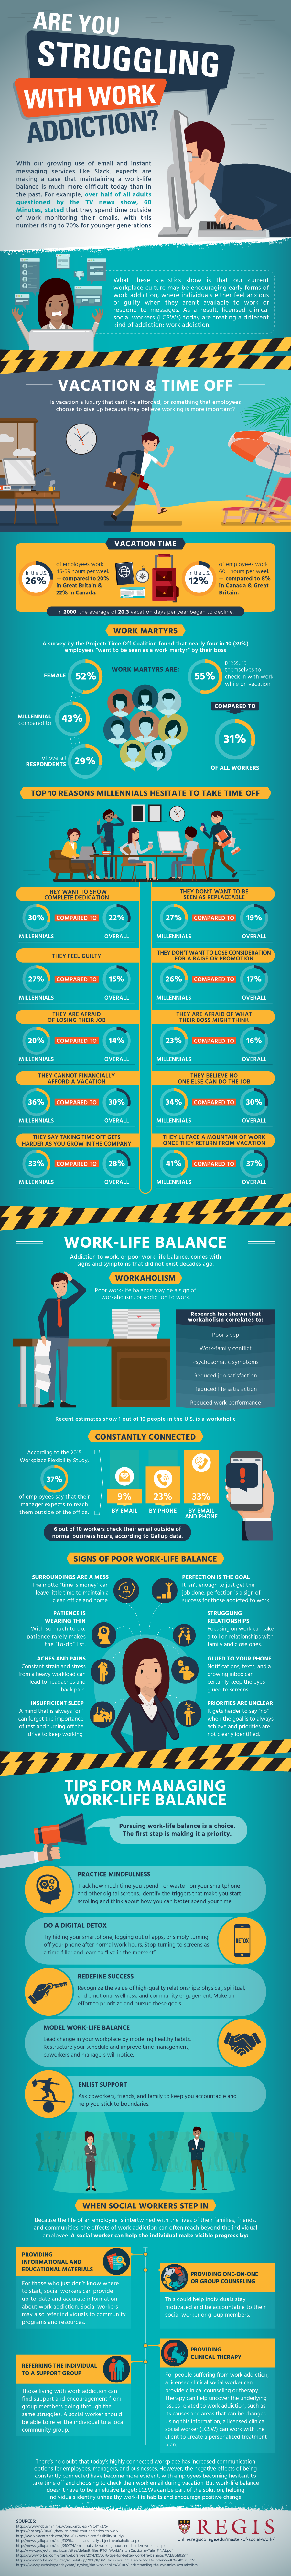 How LCSWs can play a vital role in restoring work-life balance to workaholics.